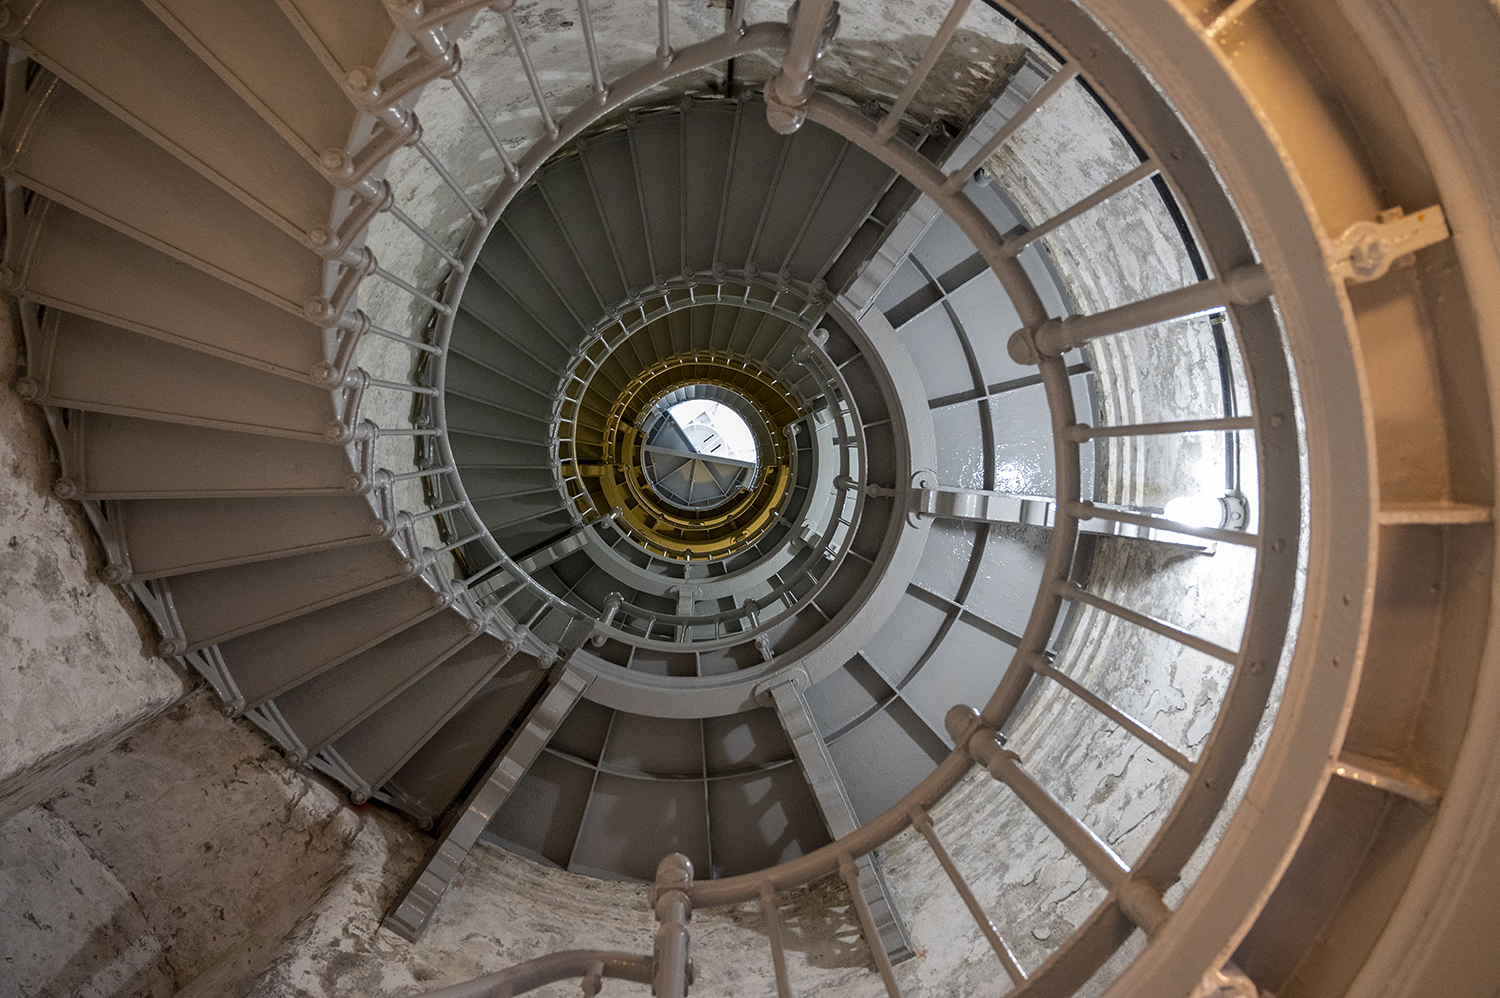 Guests can purchase a $5 ticket and step inside the tower for a closer look. Head up the spiral staircase to the lantern room, 135 steps to the very top. If you're afraid of heights, just don't look down. (Image: Rachael Jones / Seattle Refined)